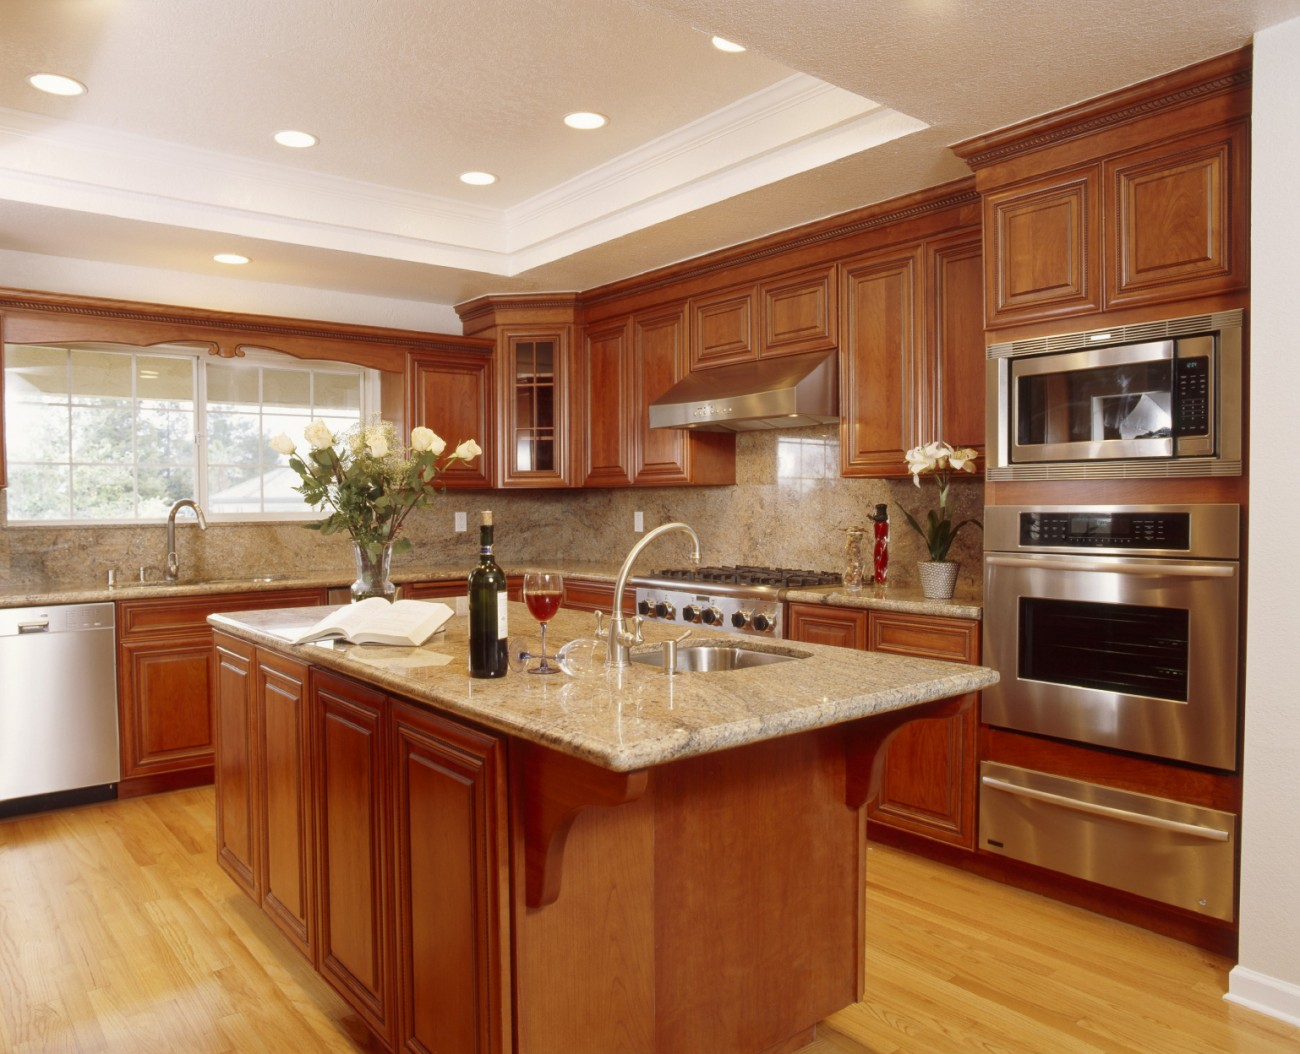 Beautiful kitchen Wood kitchen design gallery